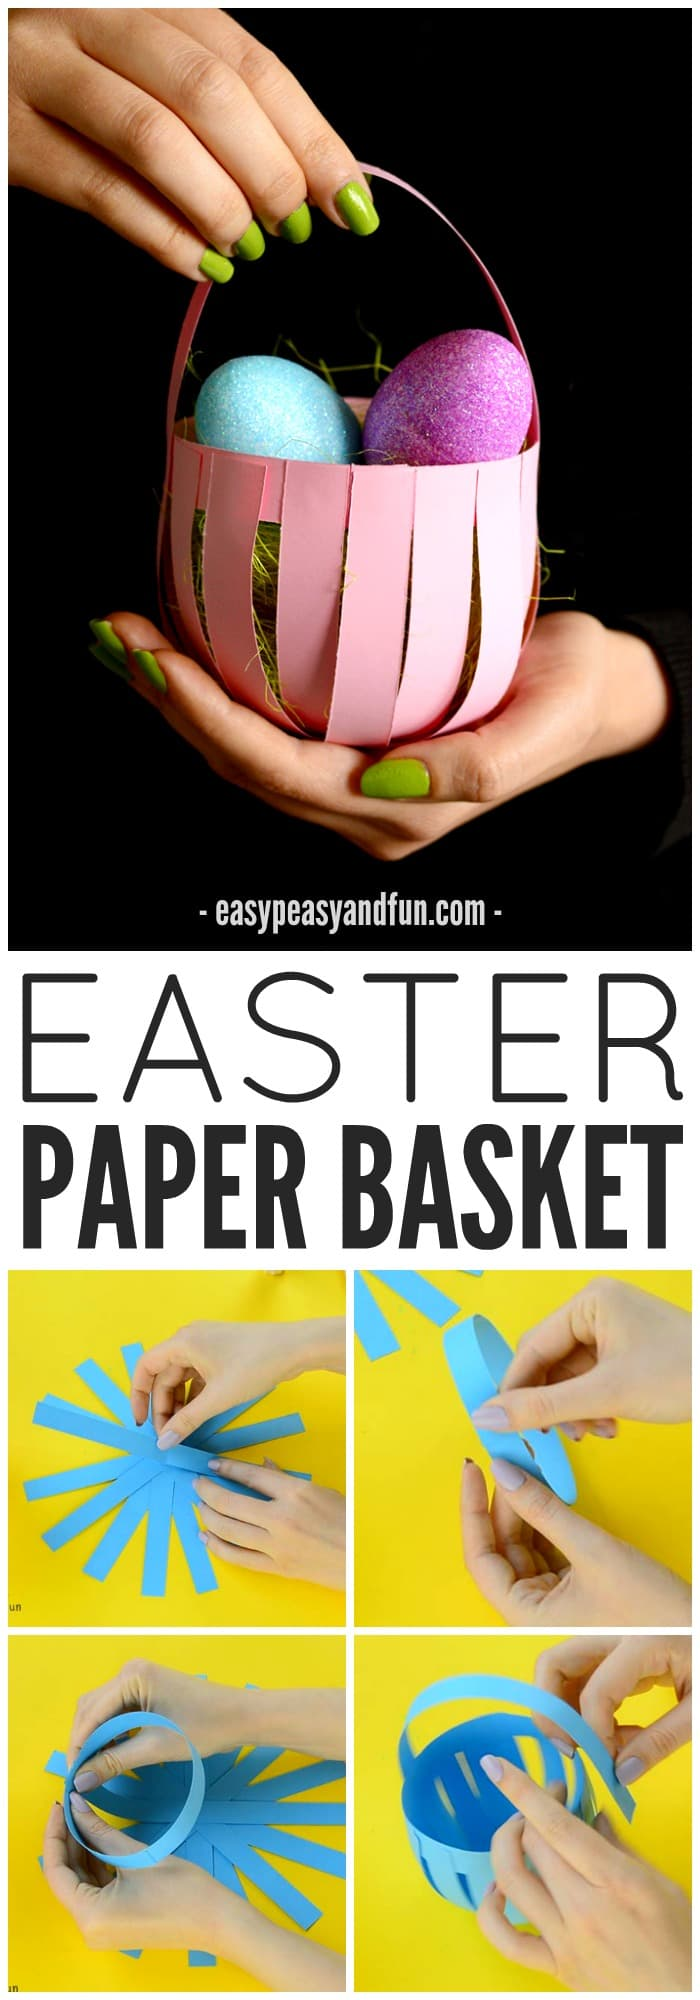 Make This Cute Paper Basket Craft